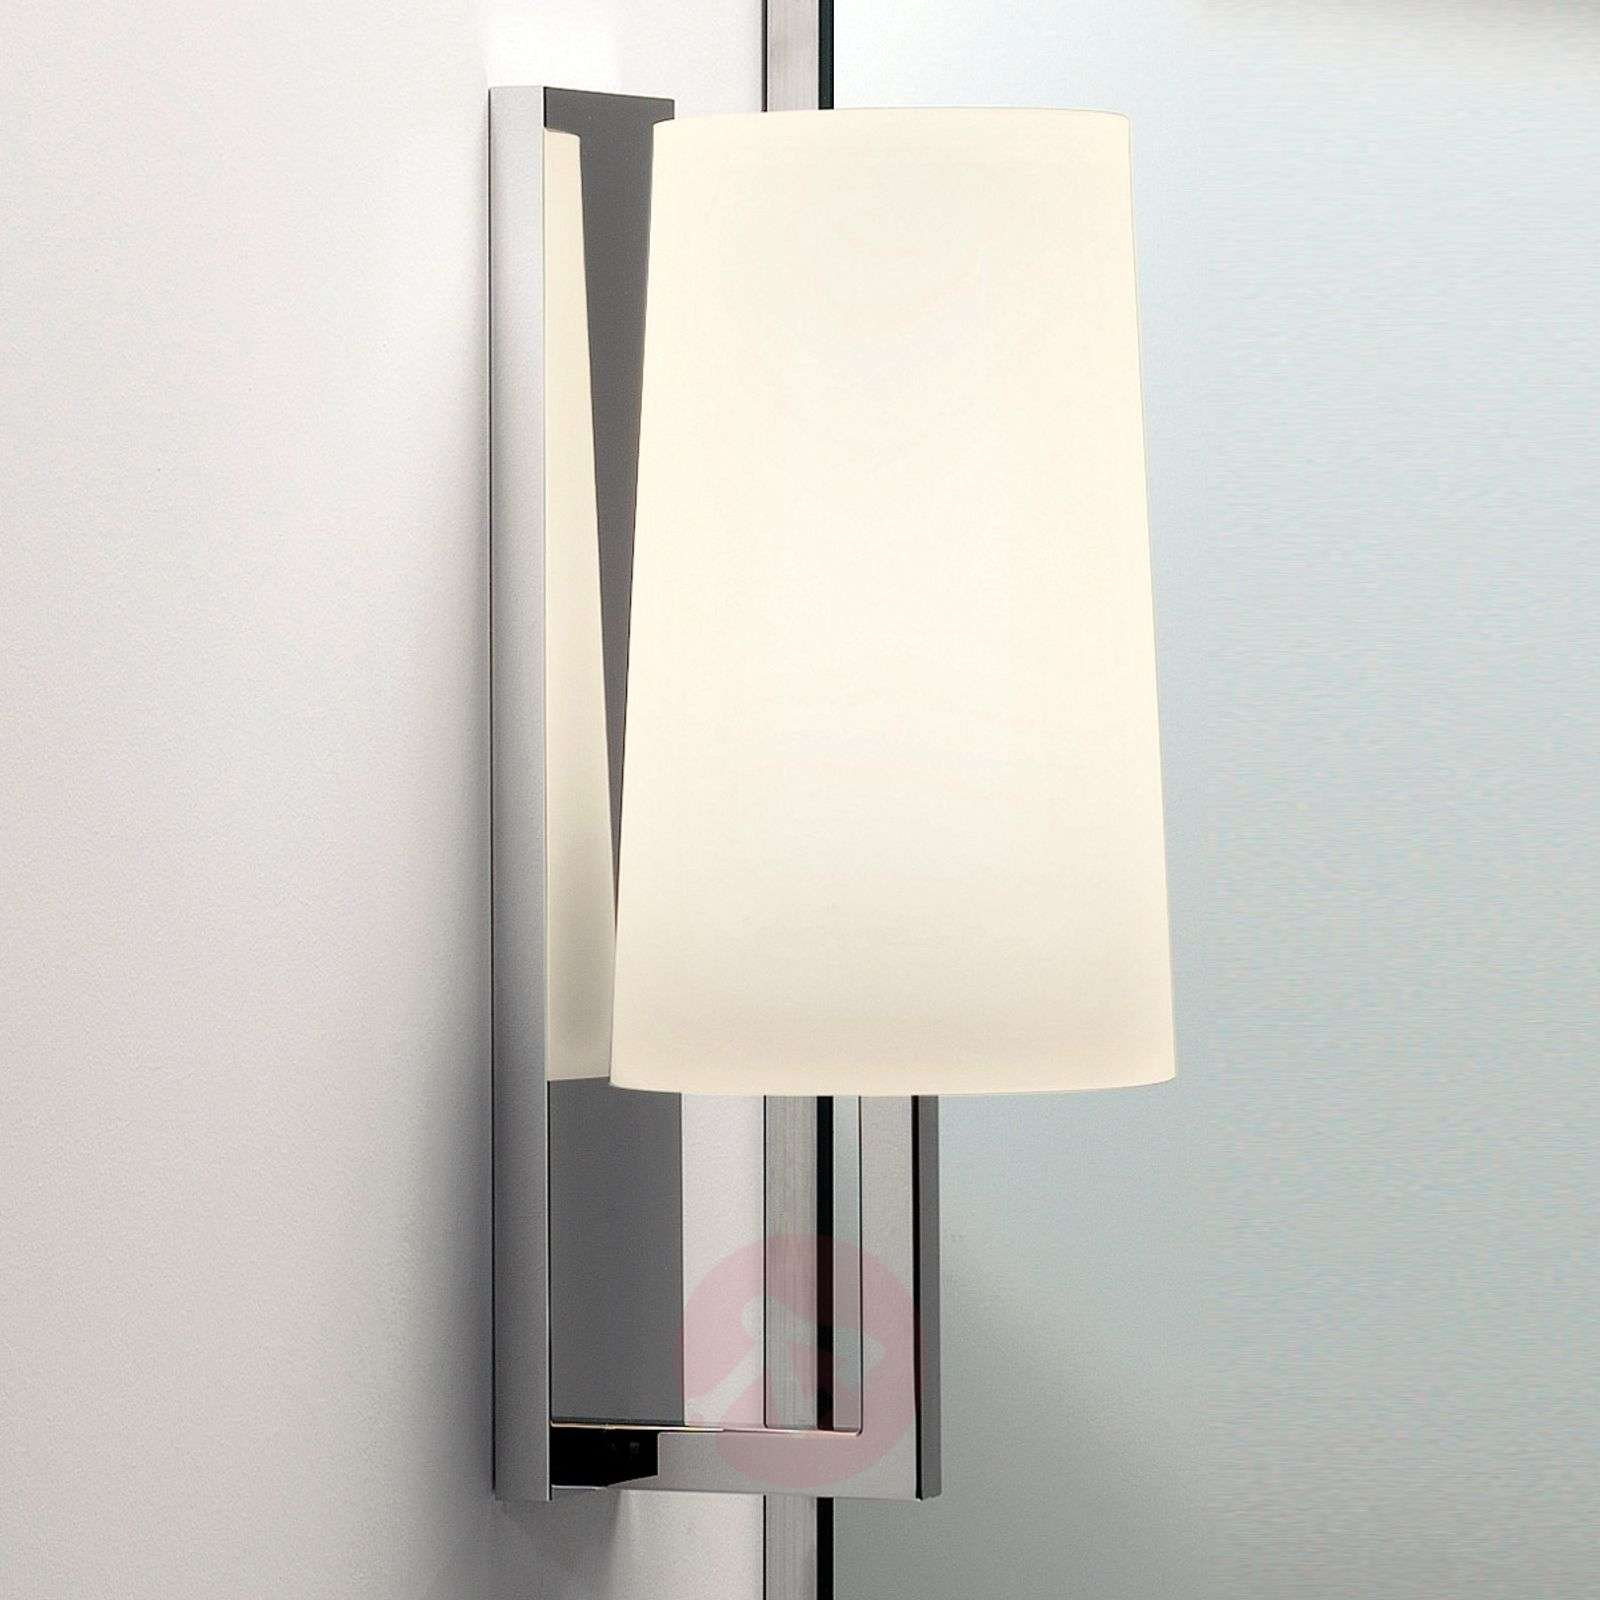 Riva Wall Light Elegant-1020405-01